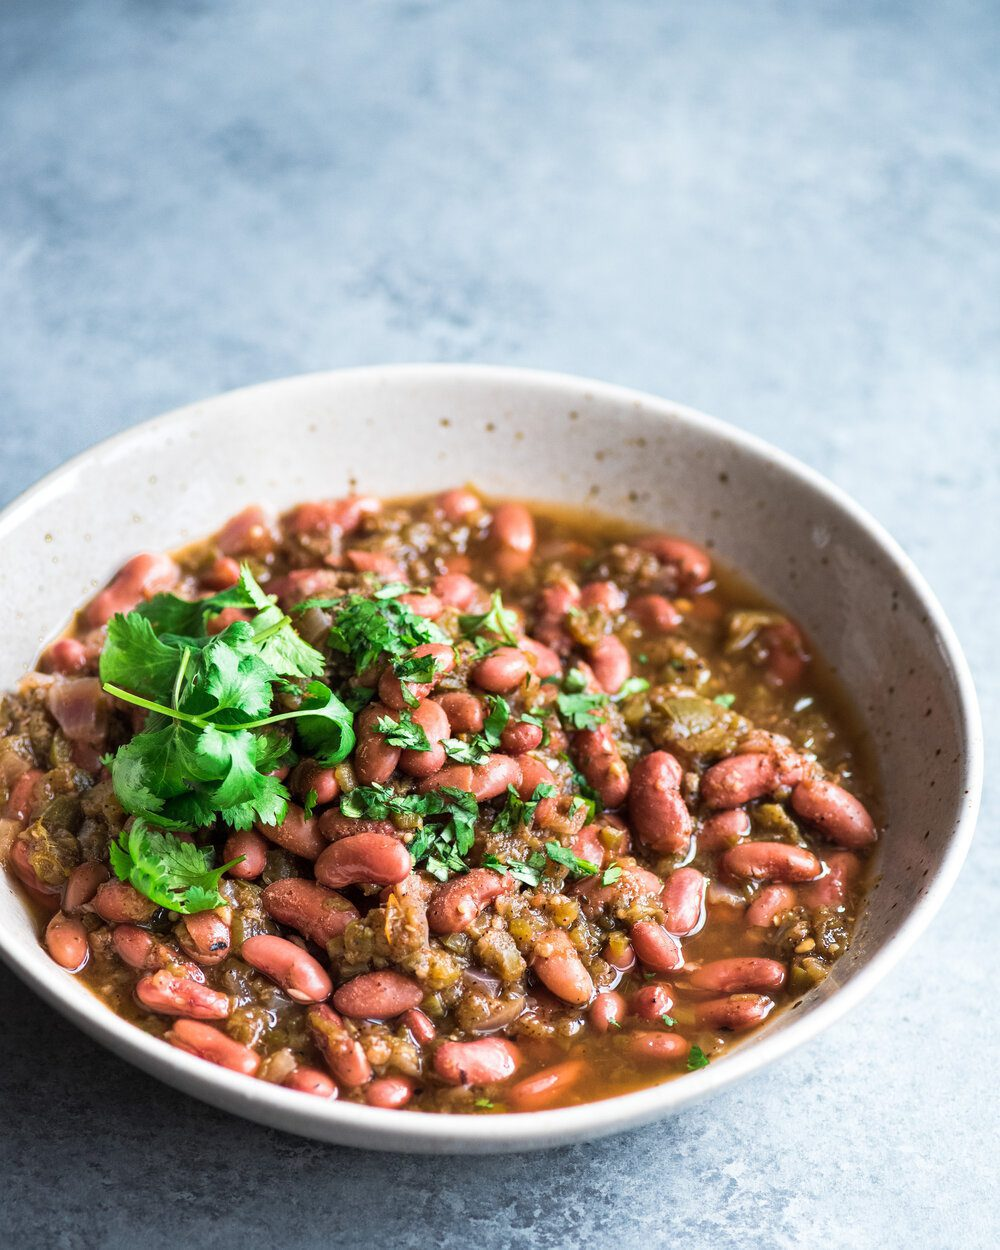 15 Easy Vegan Pantry Recipes: Instant Pot Mexican Kidney Beans (Frijoles)